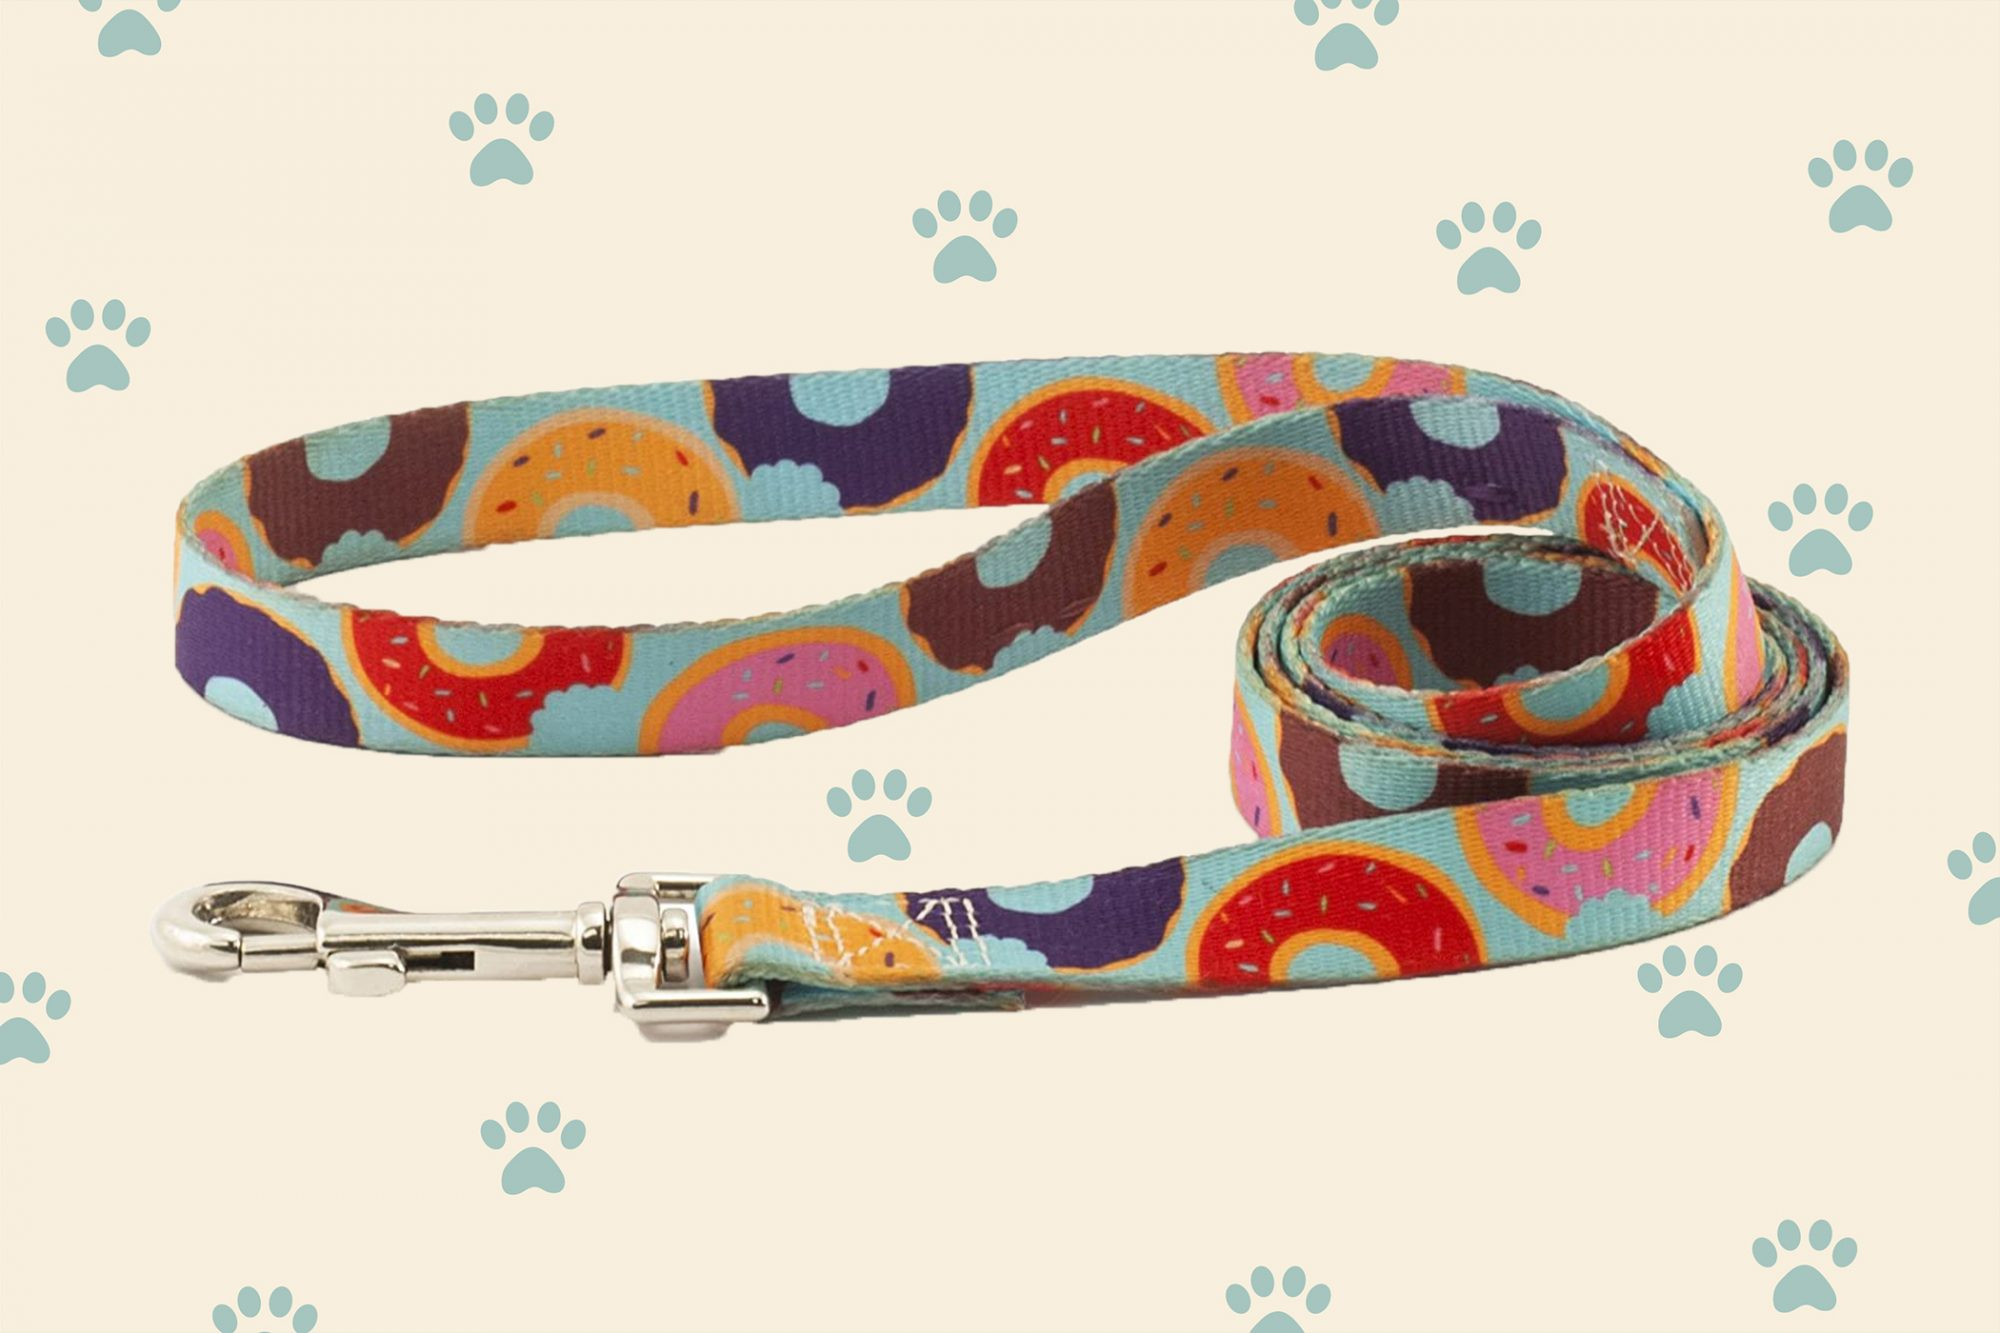 light blue dog leash with multicolored donuts design on cream background